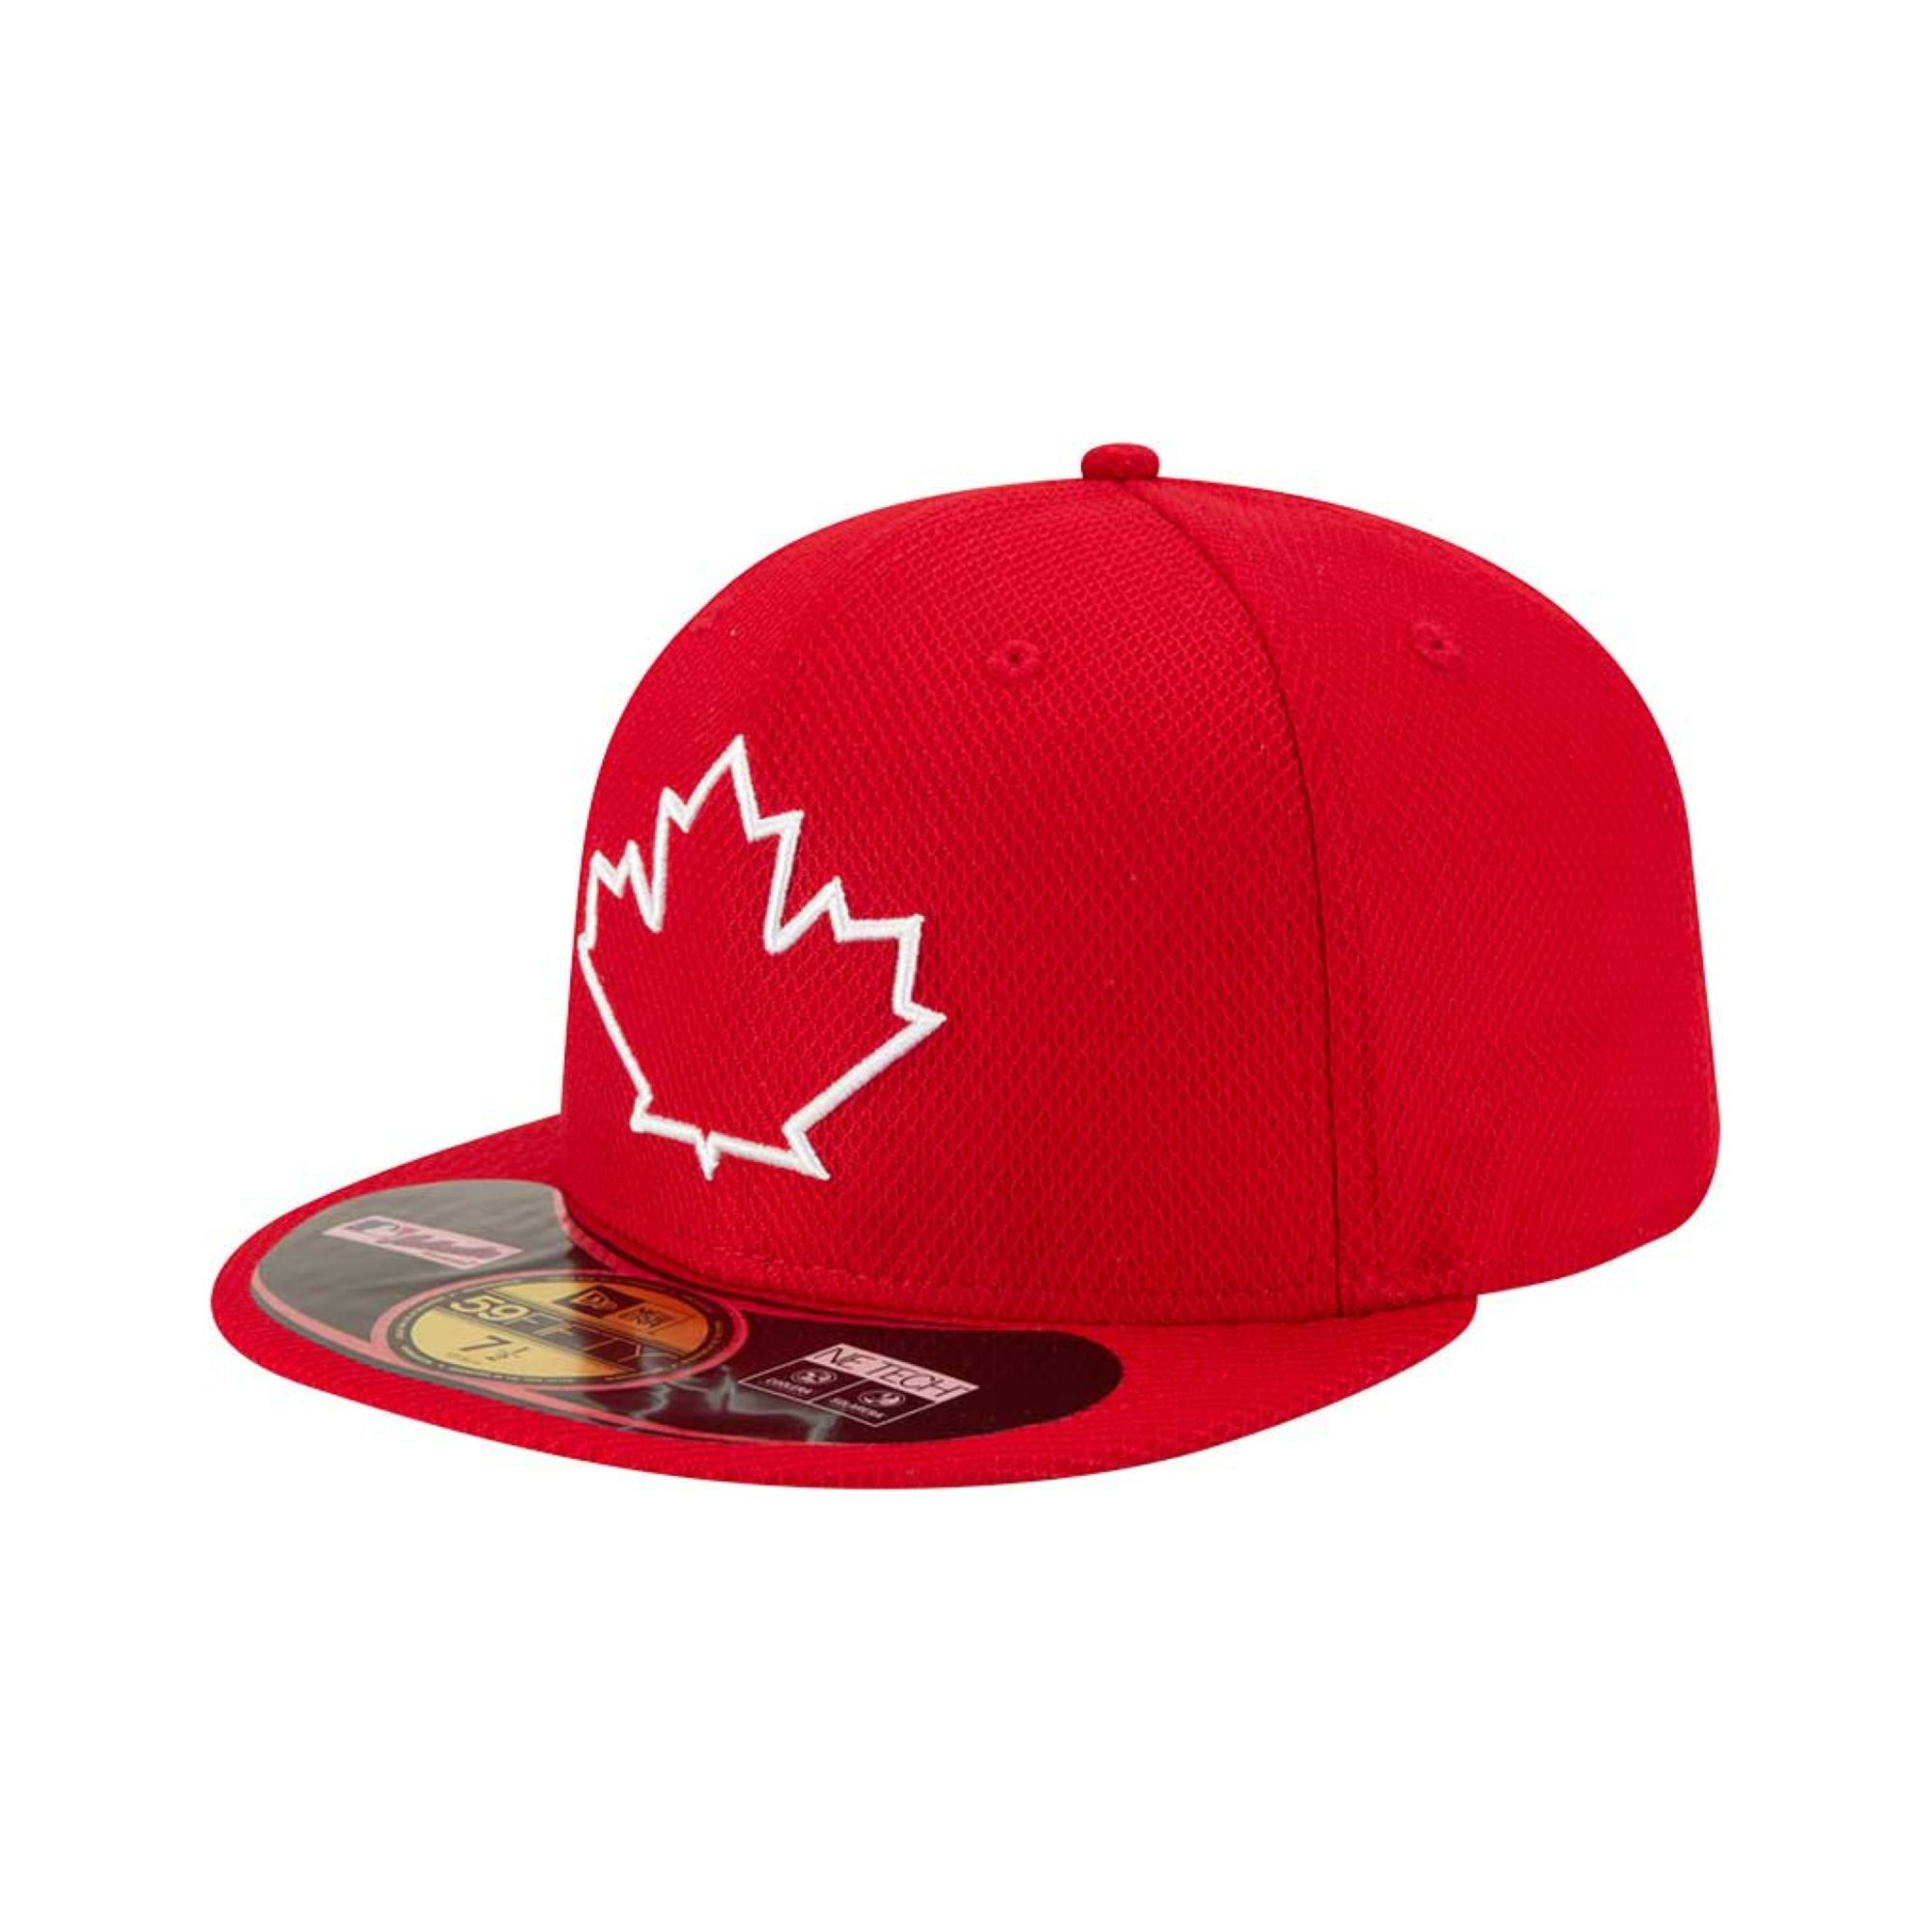 wholesale dealer 9e89a 1fc09 ... clearance lyst ktz toronto blue jays mlb diamond era 59fifty cap in red  for men 0c215